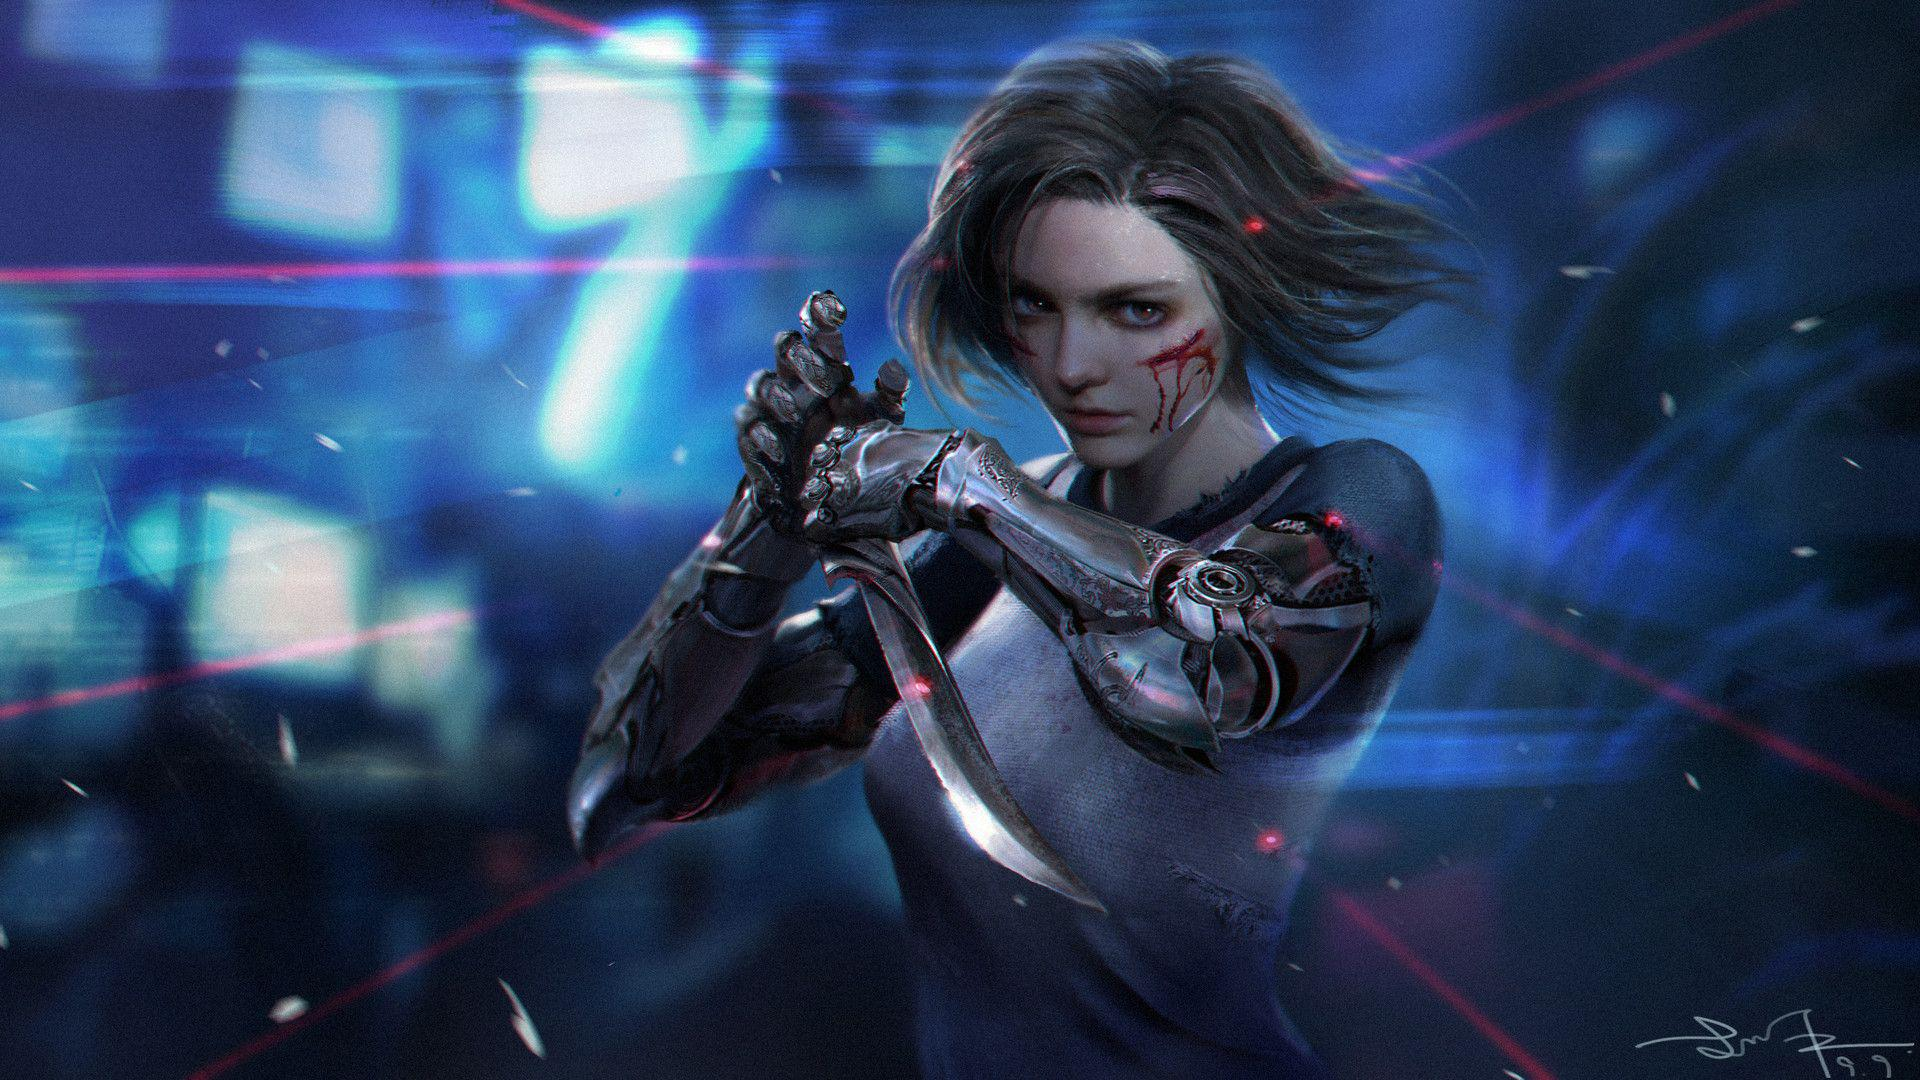 Wallpaper k Alita Battle Angel movies wallpapers k